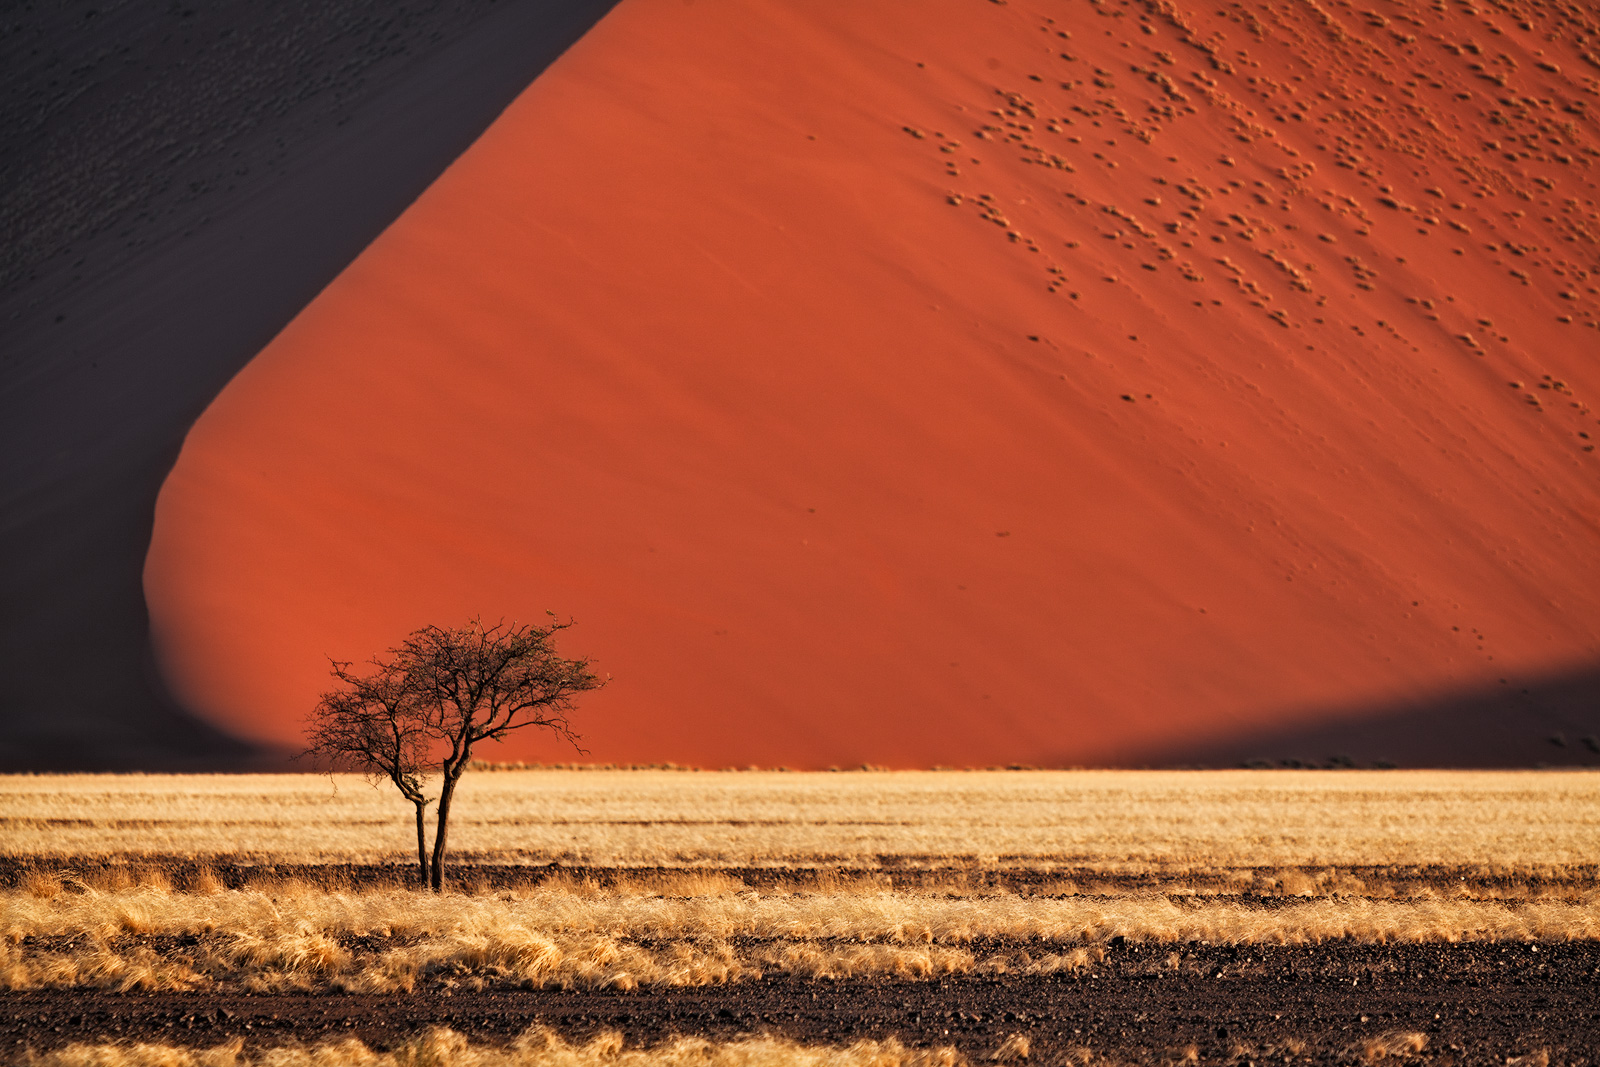 africa,african,desert,dune,horizontal,namibia,namibian,orange,sand, photo